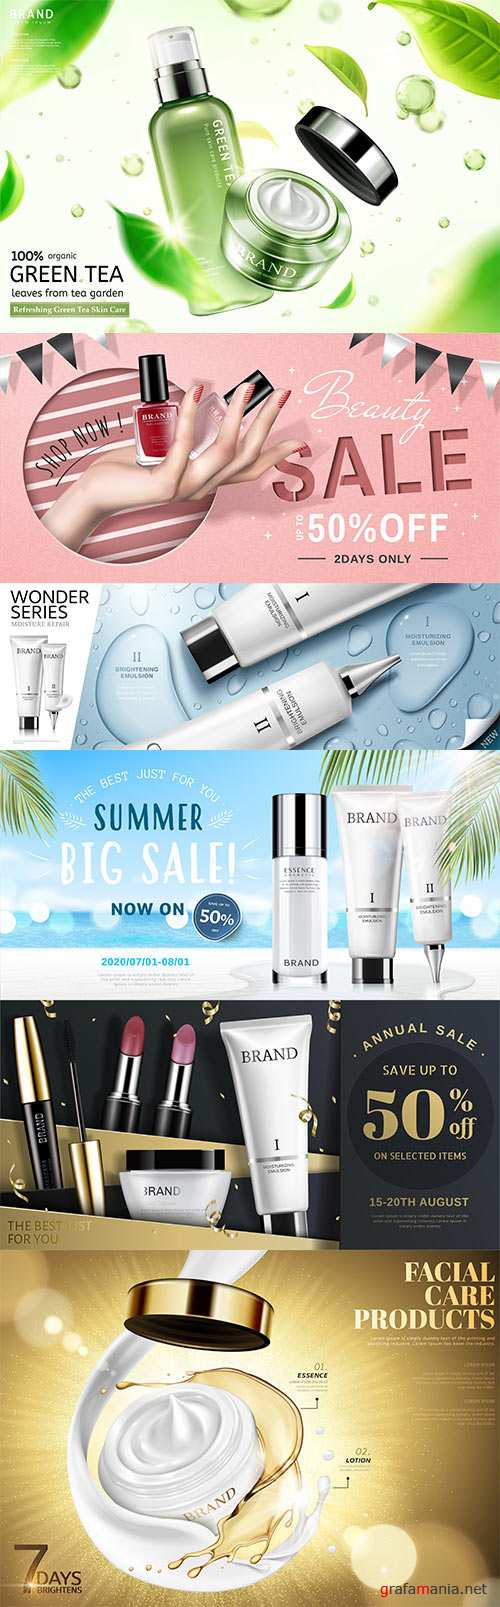 Trendy cosmetic product ads vector 3d illustration